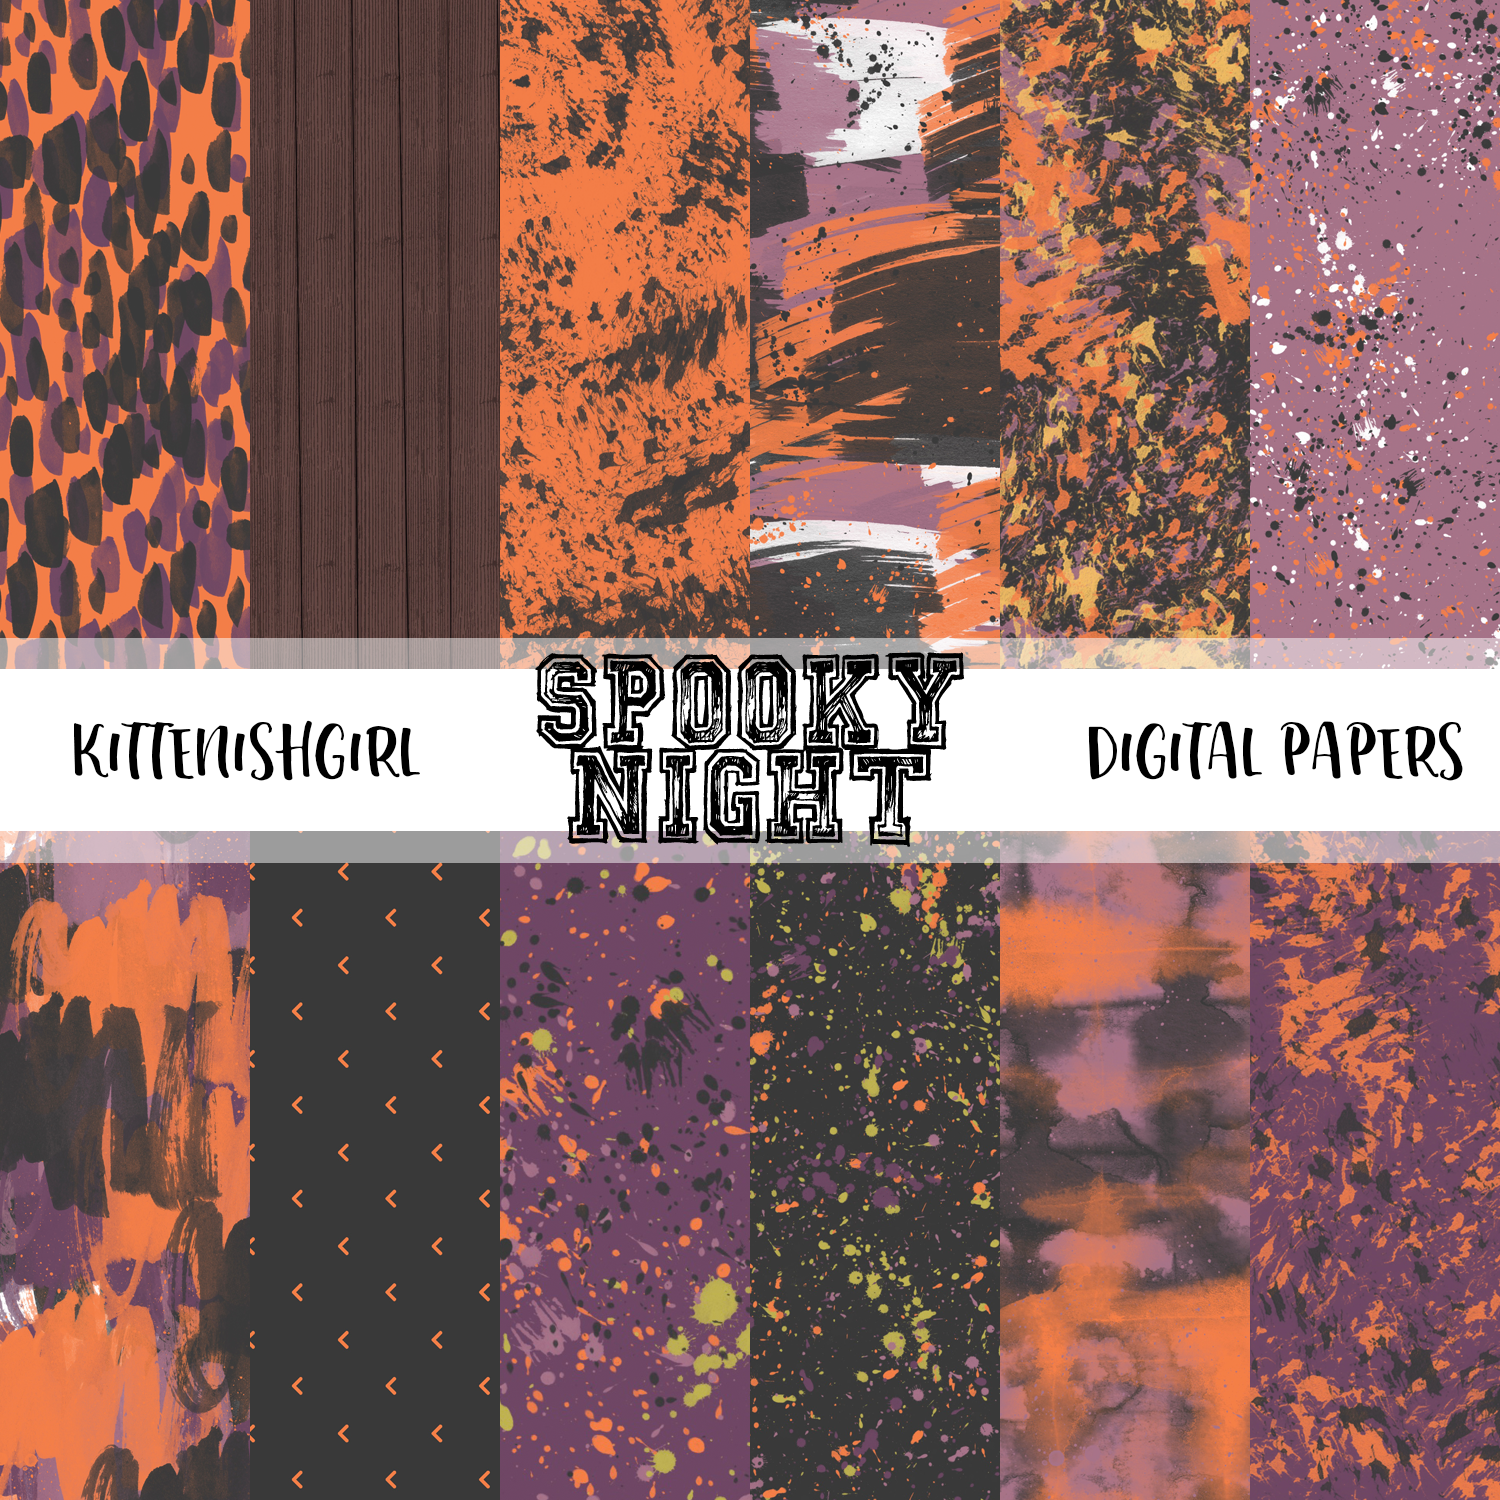 Spooky Night Digital Papers Kittenishgirl